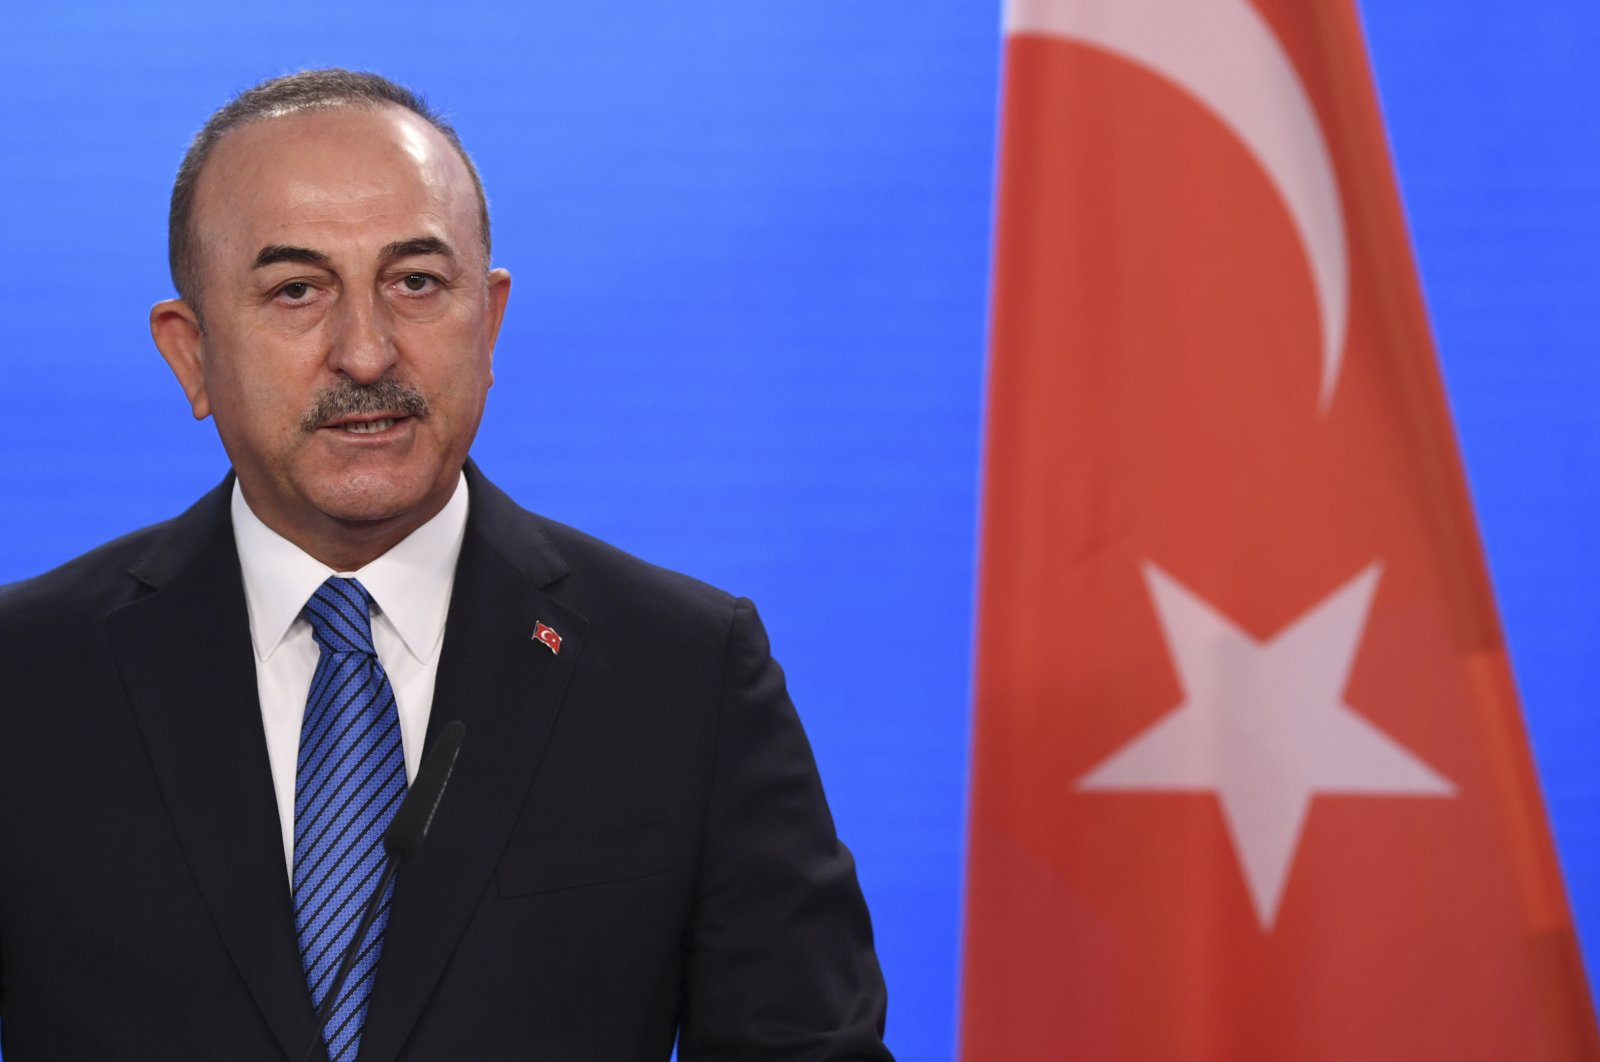 Turkish Foreign Minister Mevlüt Çavuşoğlu briefs the media following a meeting with German Foreign Minister Heiko Maas at the foreign ministry in Berlin, Germany, May 6, 2021. (EPA Photo)